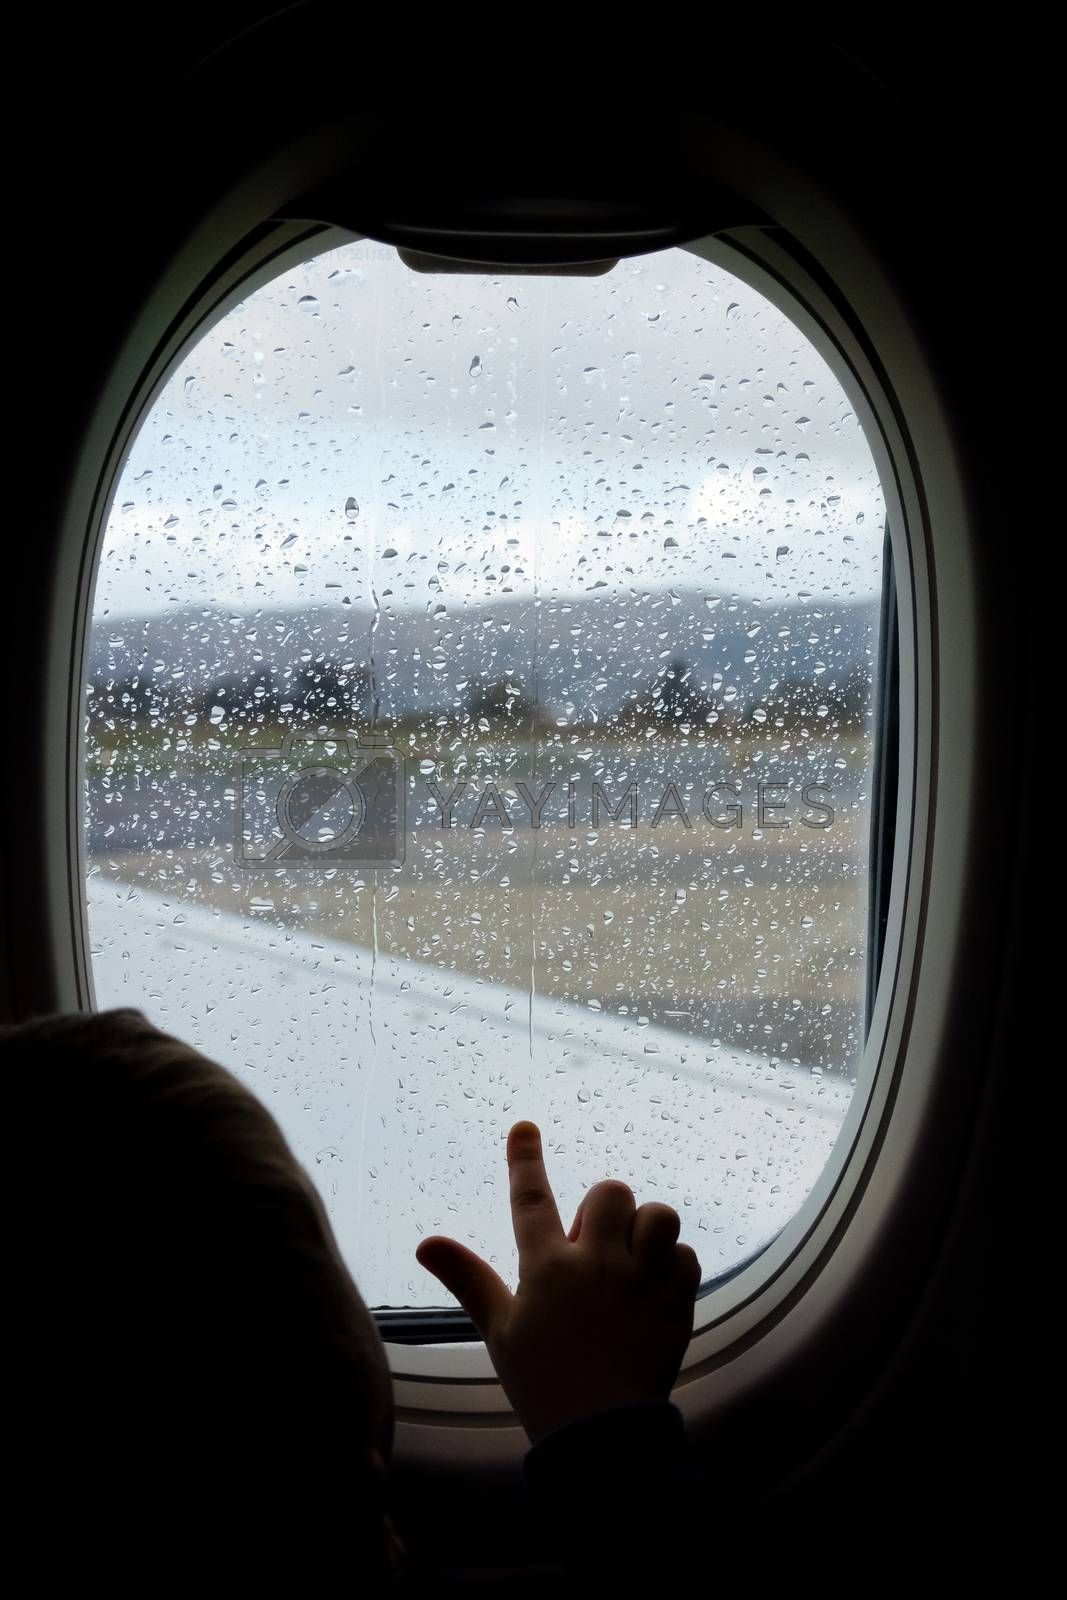 Little boy looking through the plane window before take off in the rain